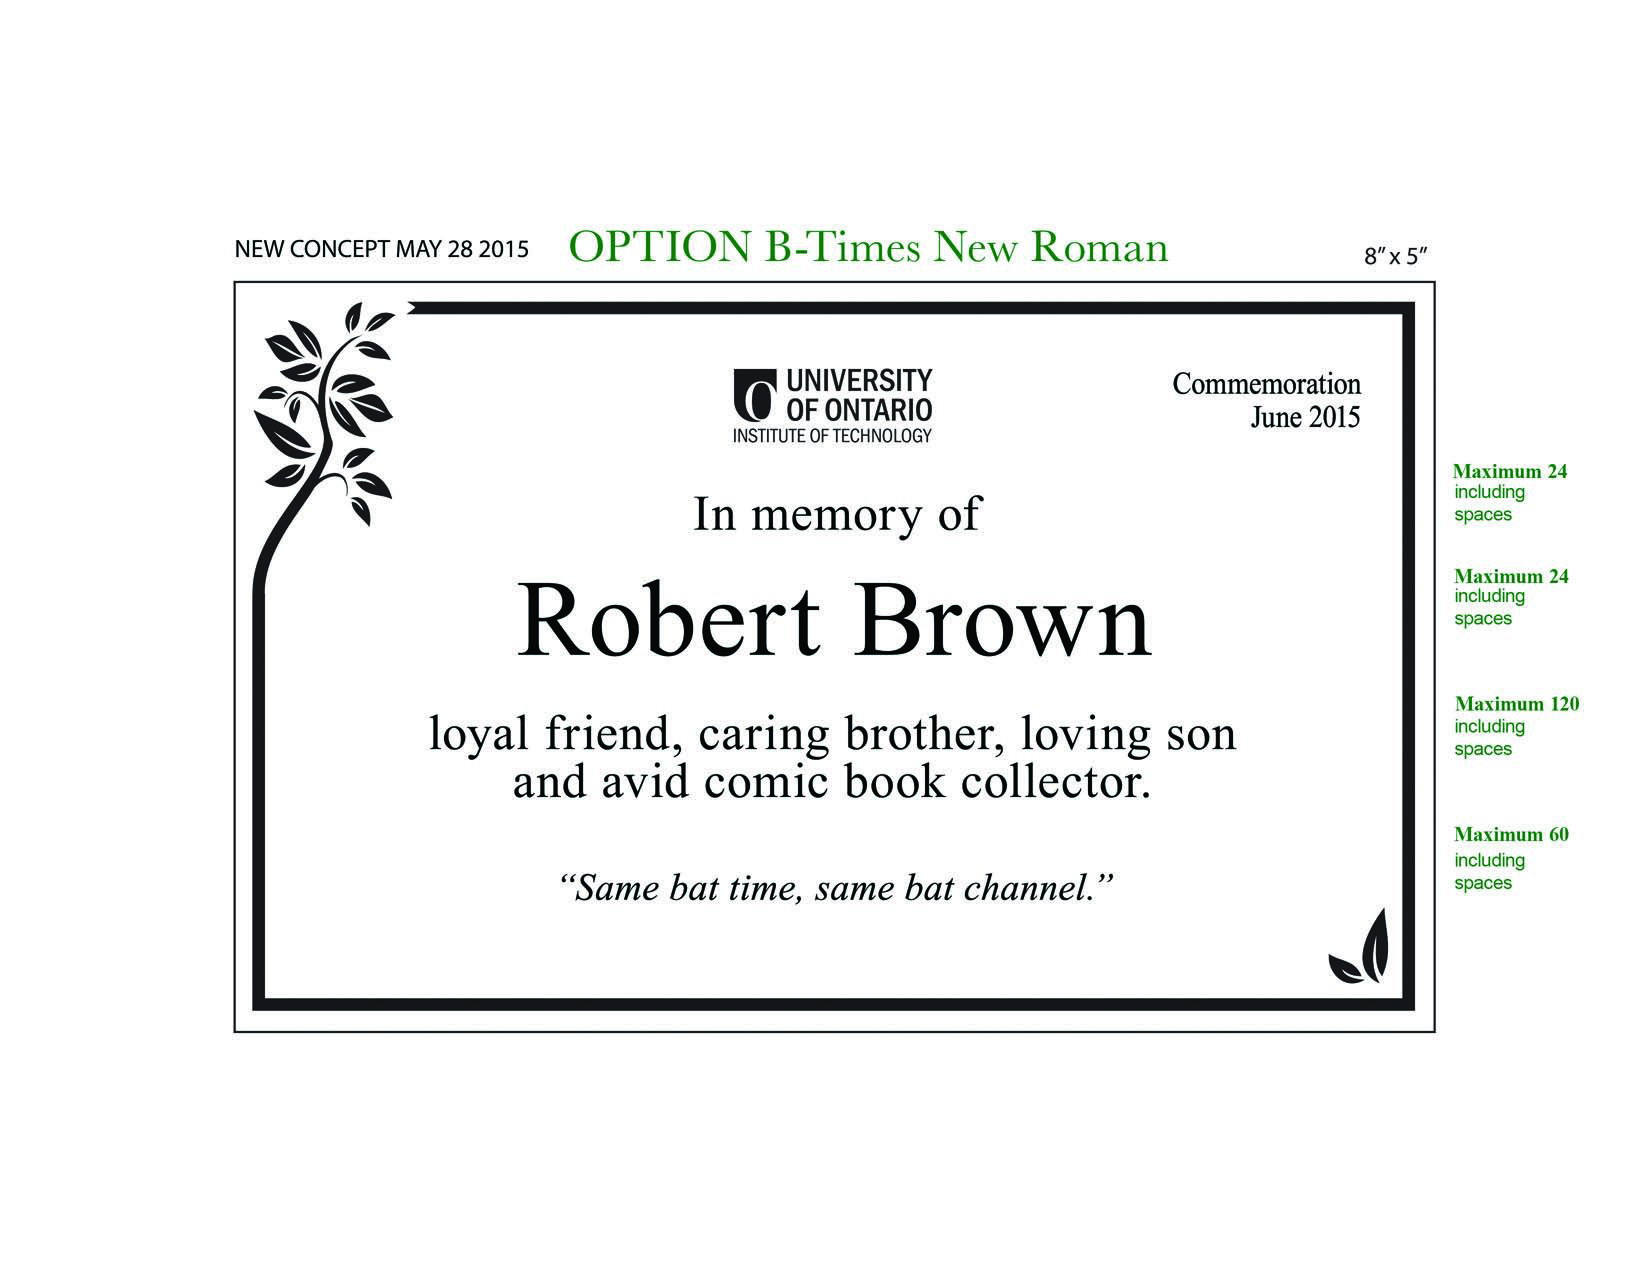 Plaque sample – In loving memory of Robert Brown, loyal friend, caring brother, loving son, and avid comic book collector.